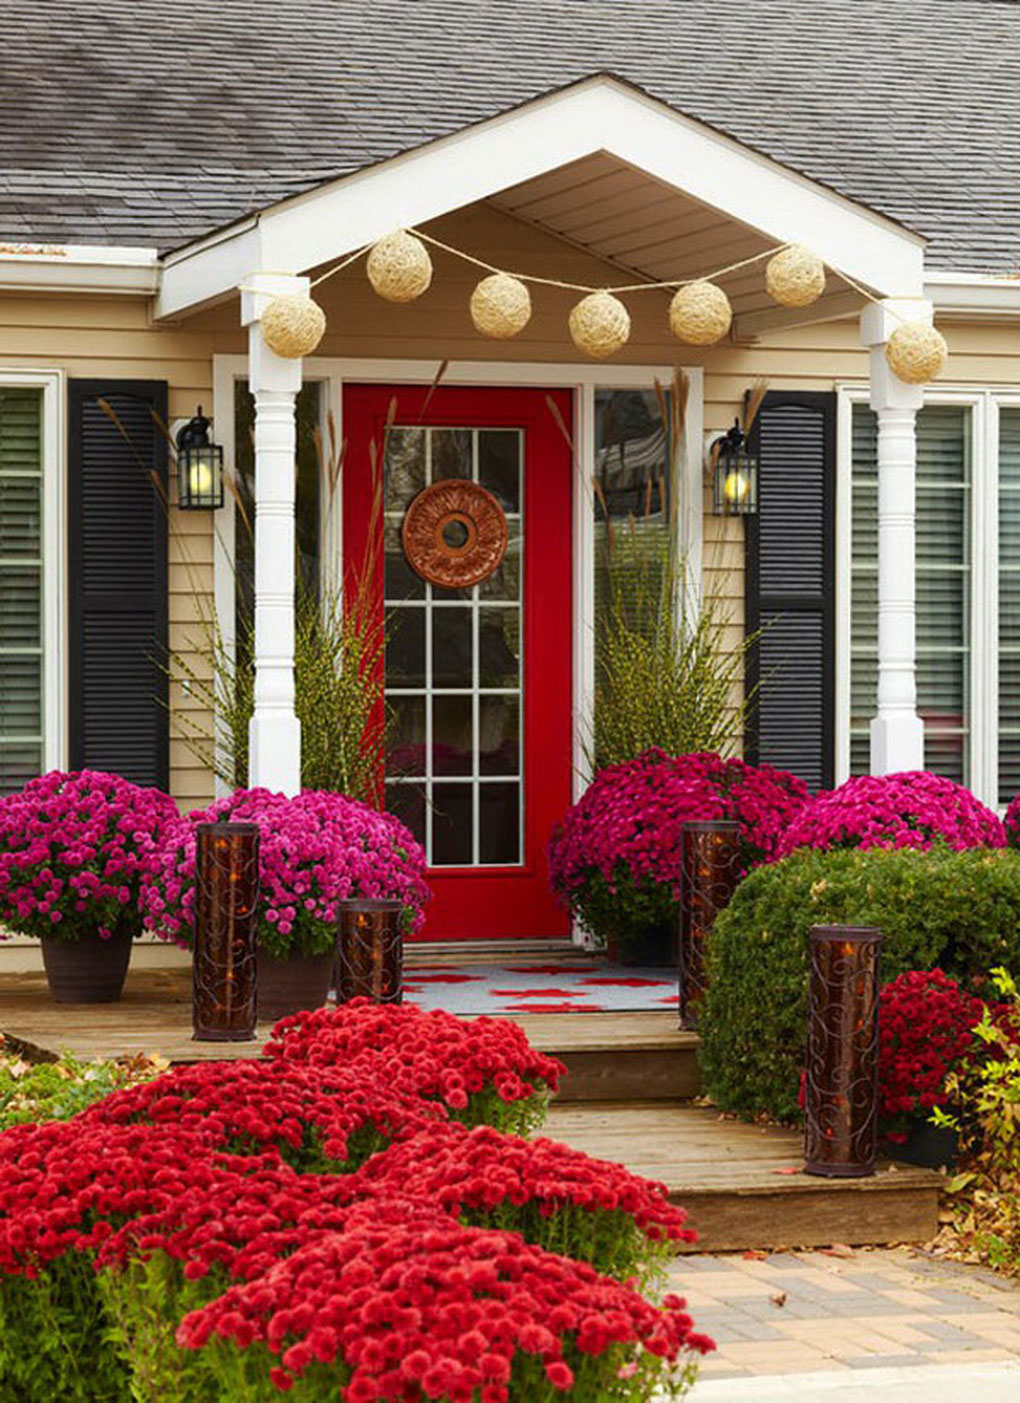 fantastic-mum-flowers-and-hanging-ball-ornament-with-cool-red-front-door-ideas-plus-walkway-lighting